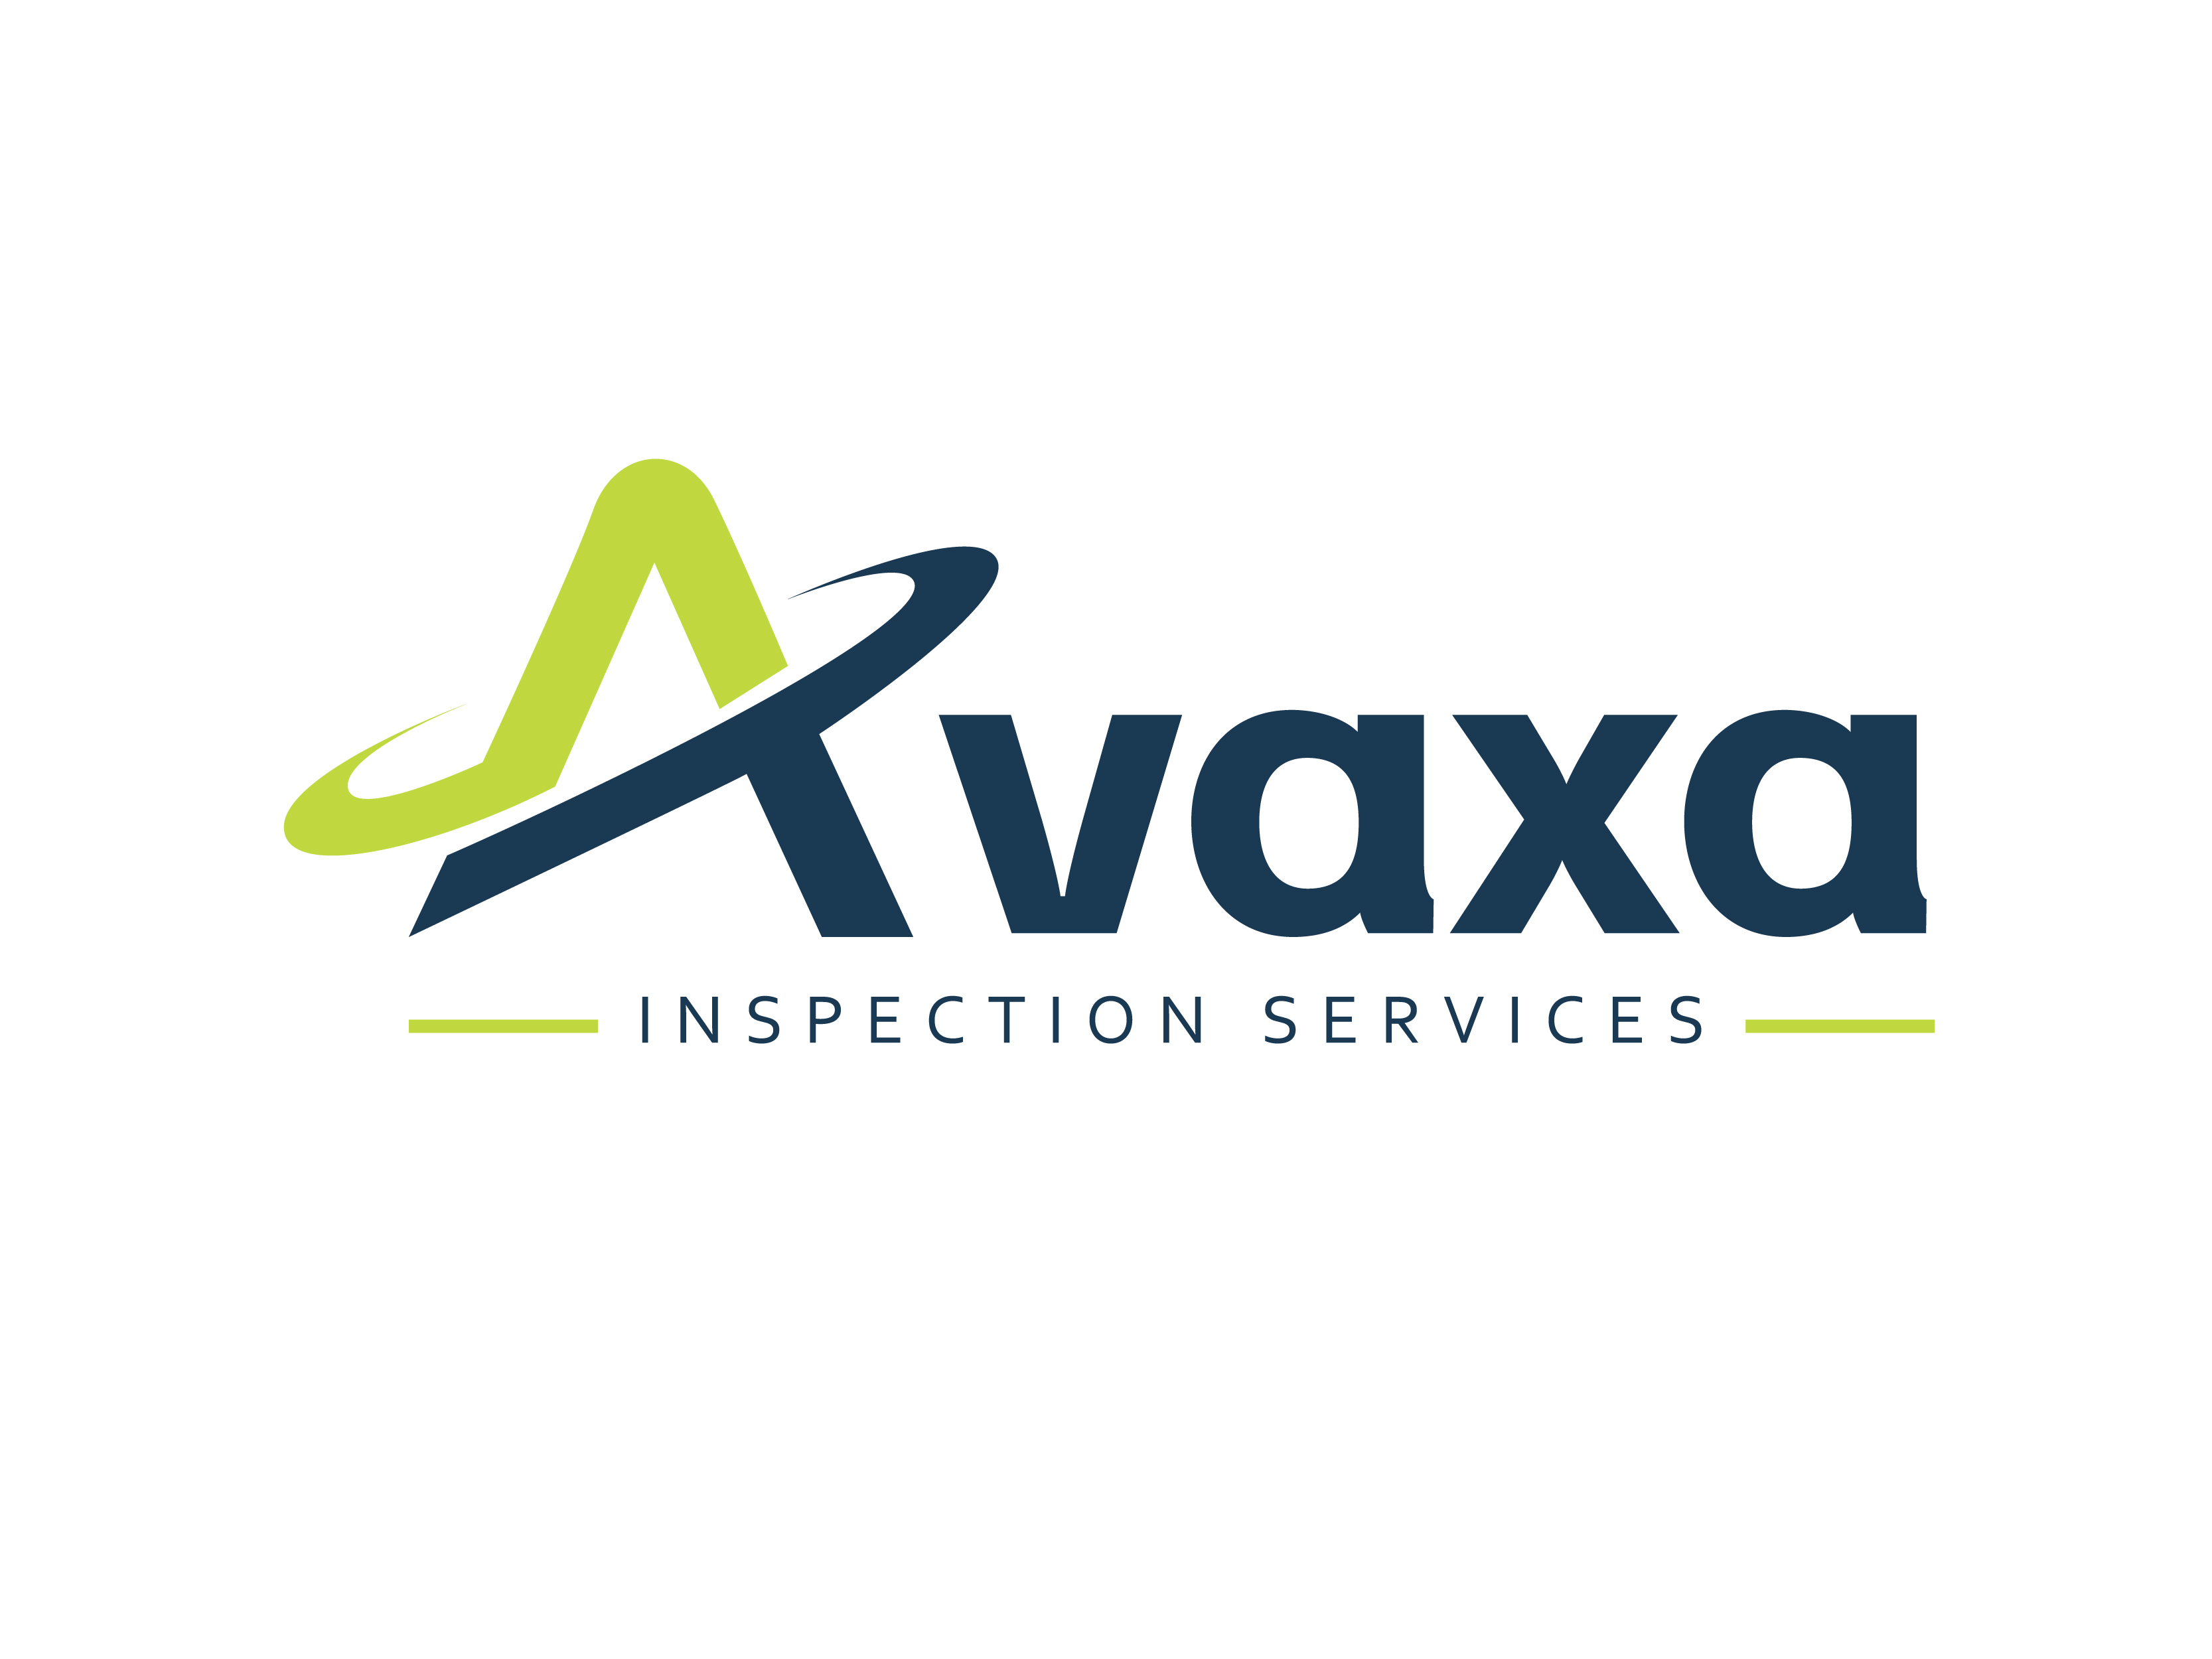 Avaxa Inspection Services company logo